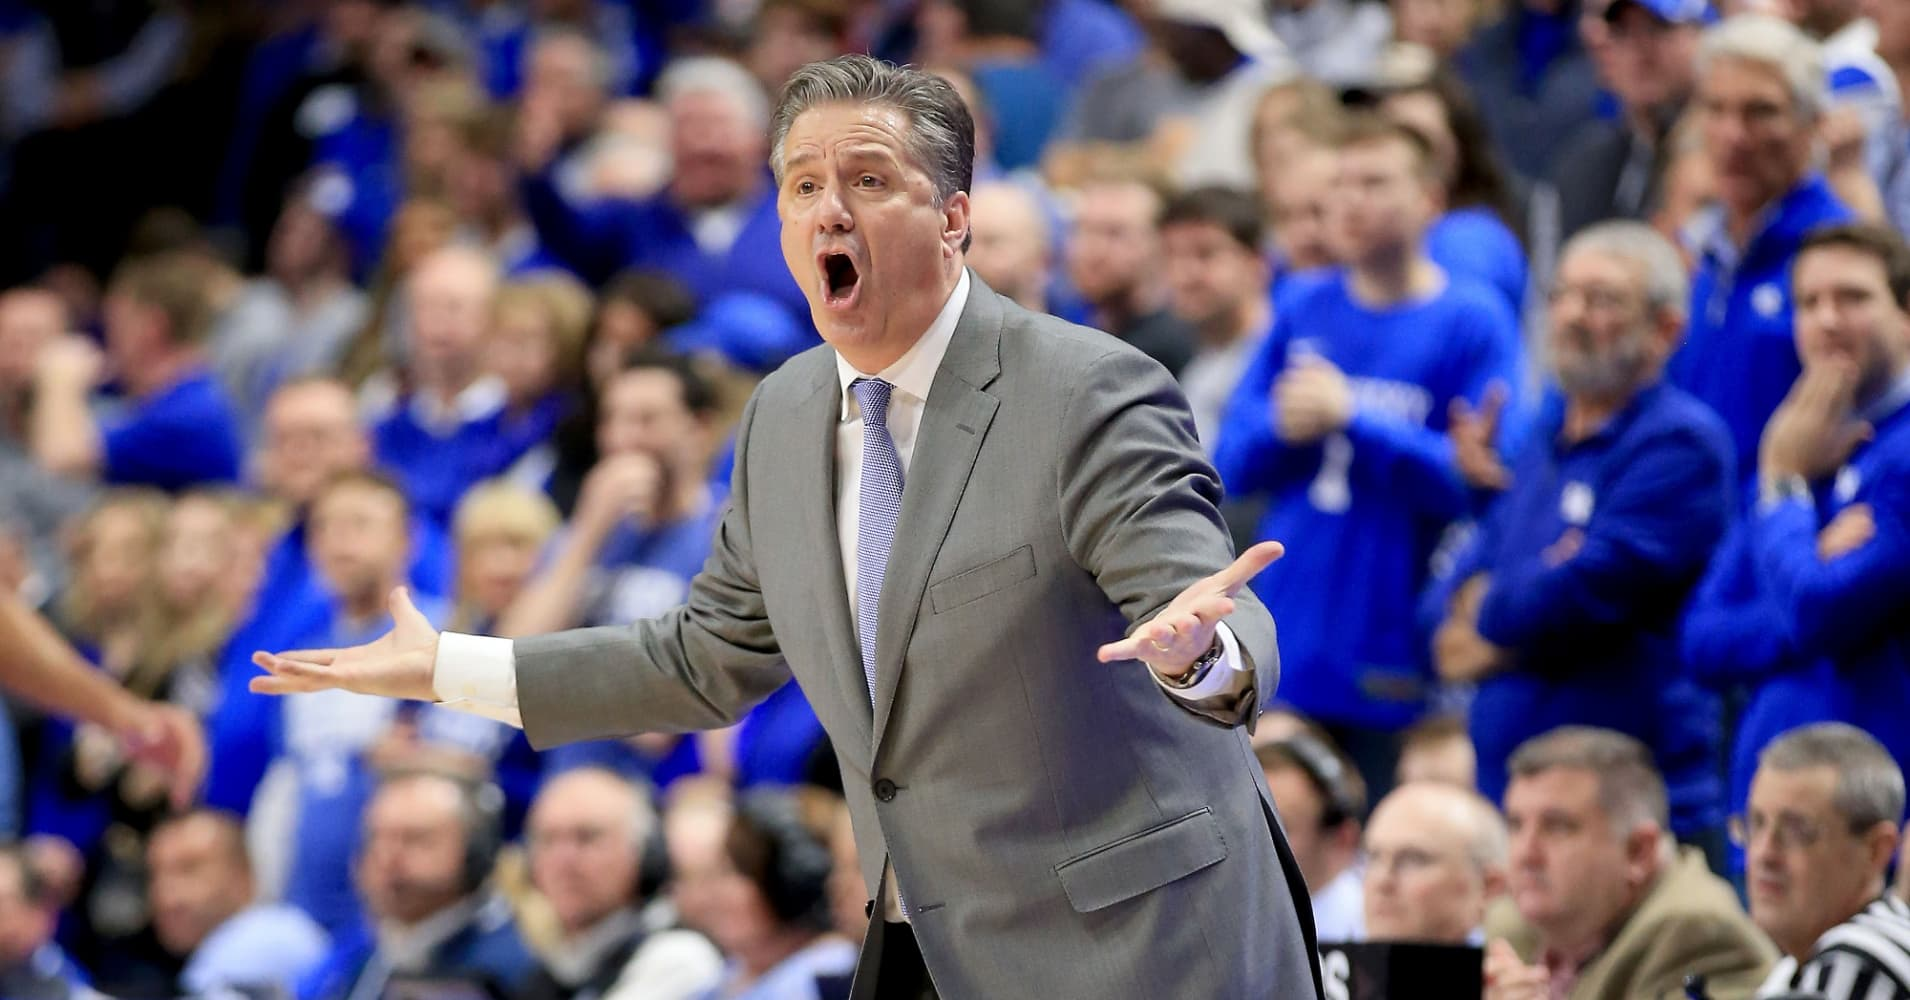 John Calipari the head coach of the Kentucky Wildcats gives instructions to his team against the Arkansas Razorbacks at Rupp Arena on February 26, 2019 in Lexington, Kentucky.